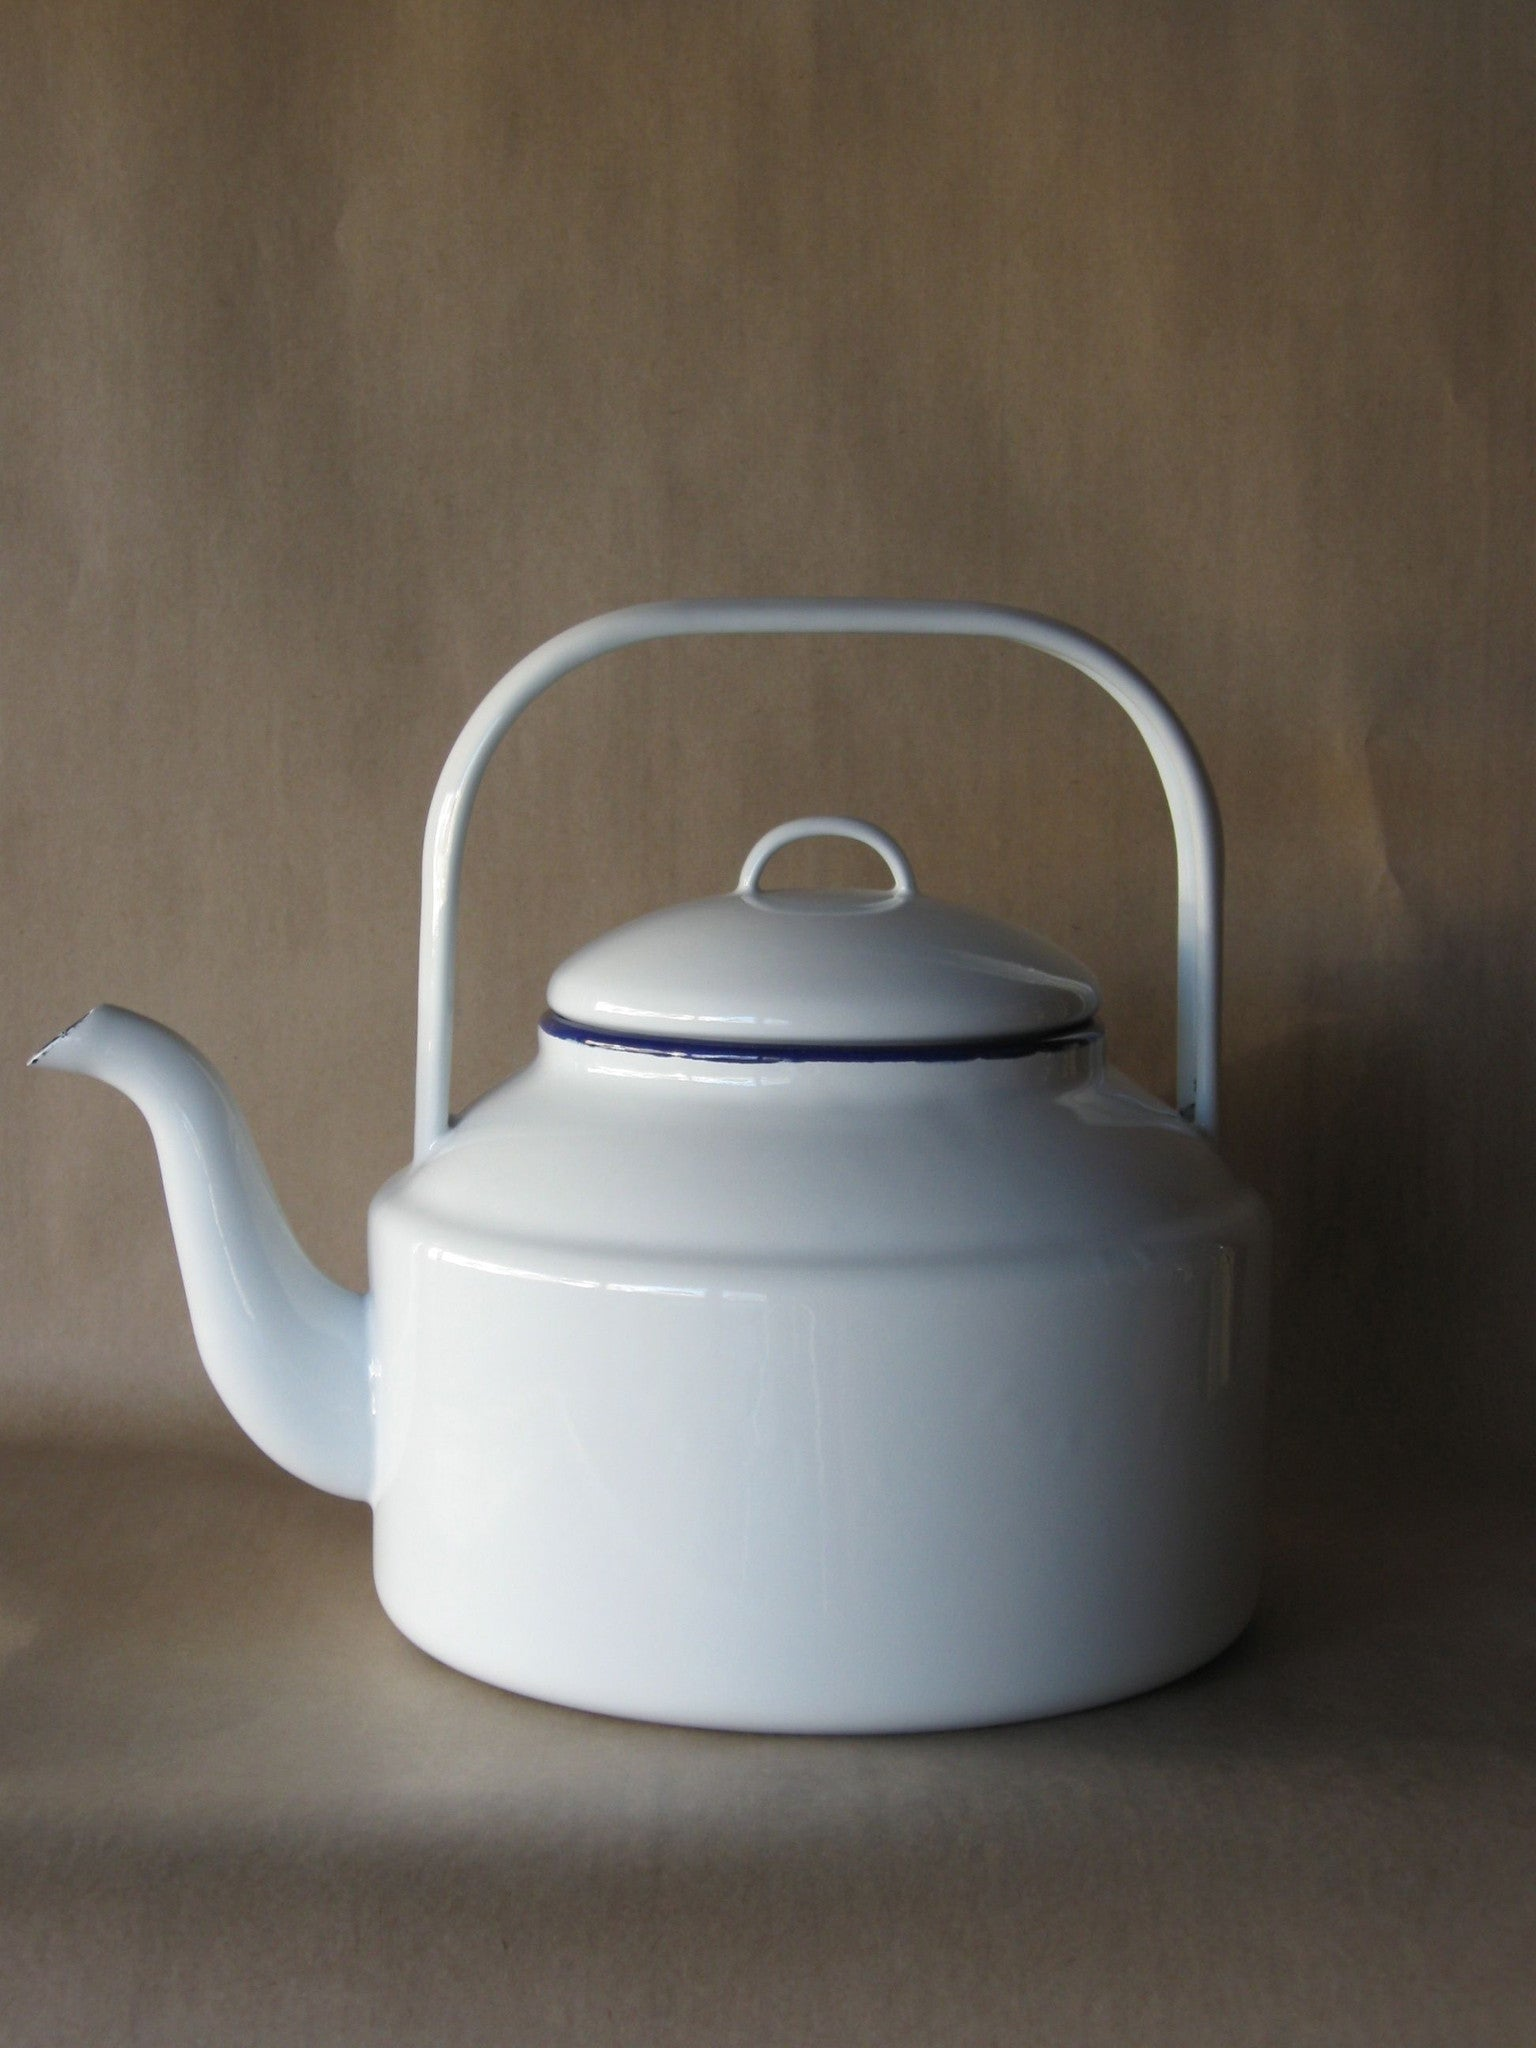 falcon enamel tea kettle  litres  odgers and mcclelland  - falcon enamel tea kettle  litres